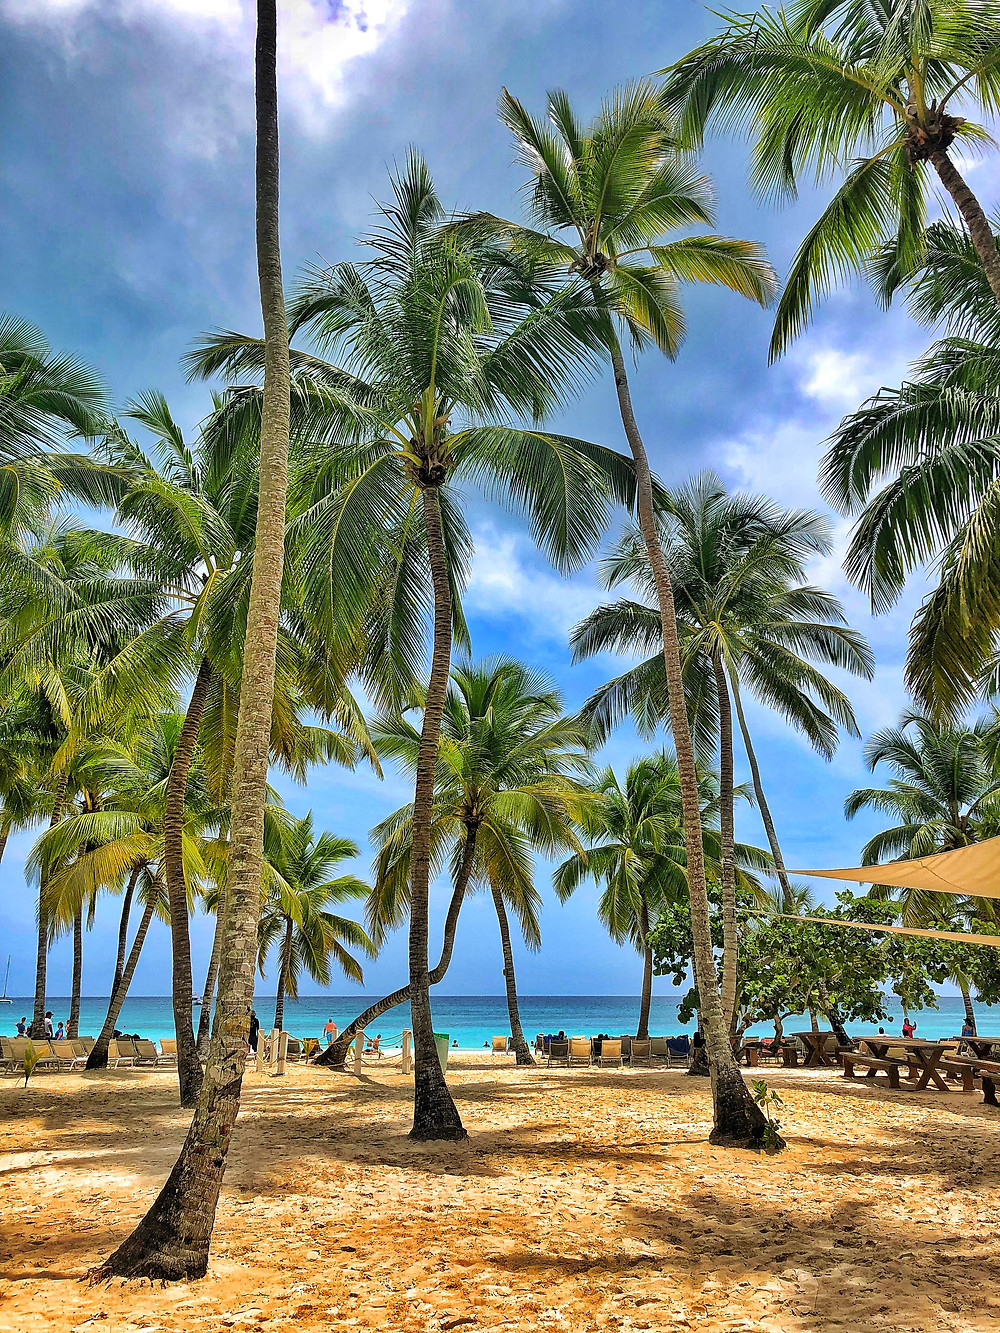 [Image description:] Palm trees fill the photograph, stretching upward against a background of rich blue skies. They have bright green palm leaves stretching from them. In the distance, you can see a deep blue ocean with lines of turquoise throughout. In the sand, you can see guests of the resort walking around and enjoying the beach.